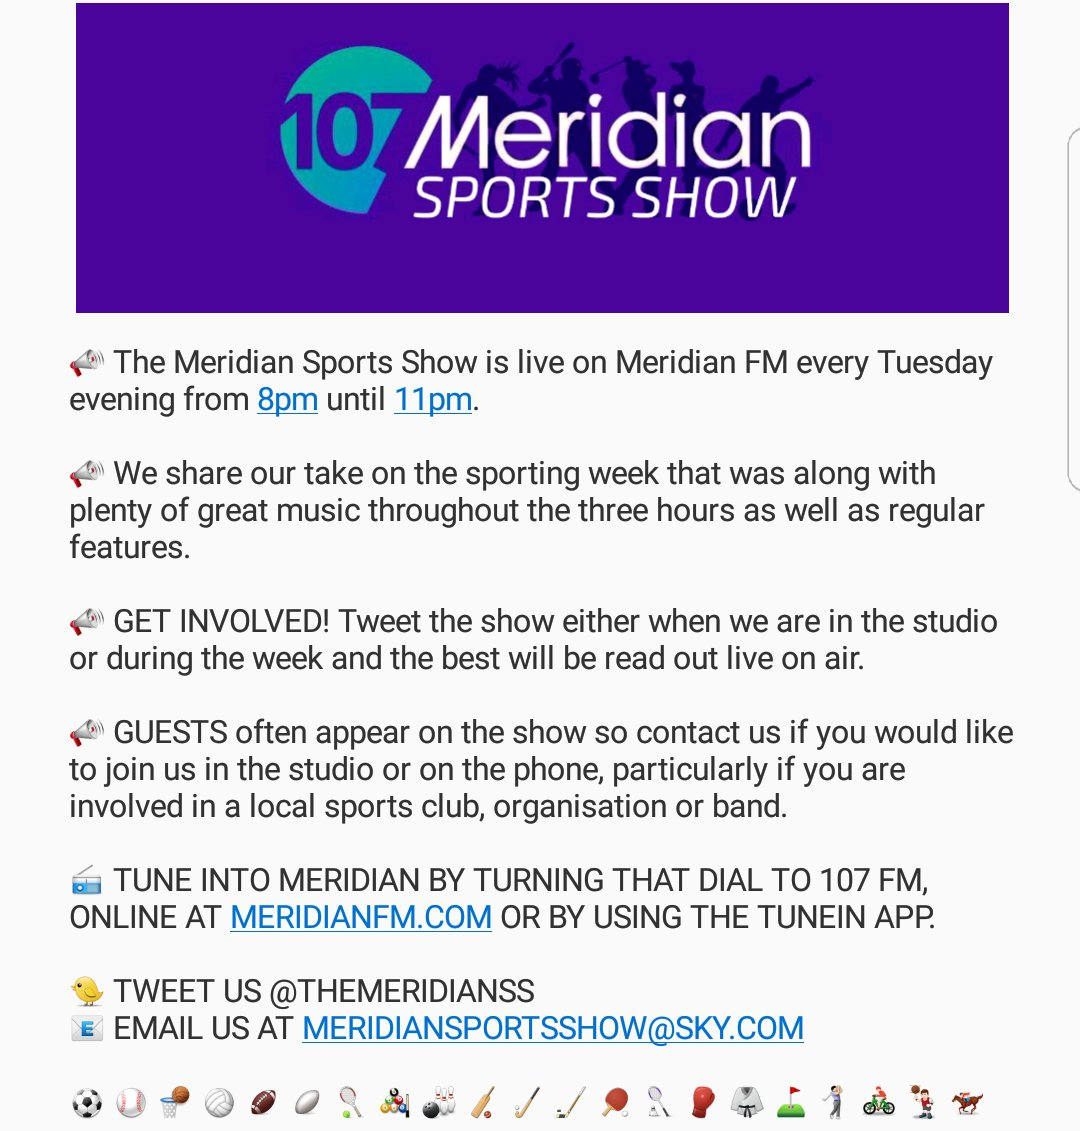 NEVER heard of the Meridian Sports Show? Find out all you need to know right here  #MeridianSS #Sport #Radio #Music<br>http://pic.twitter.com/65Dpibjy2m